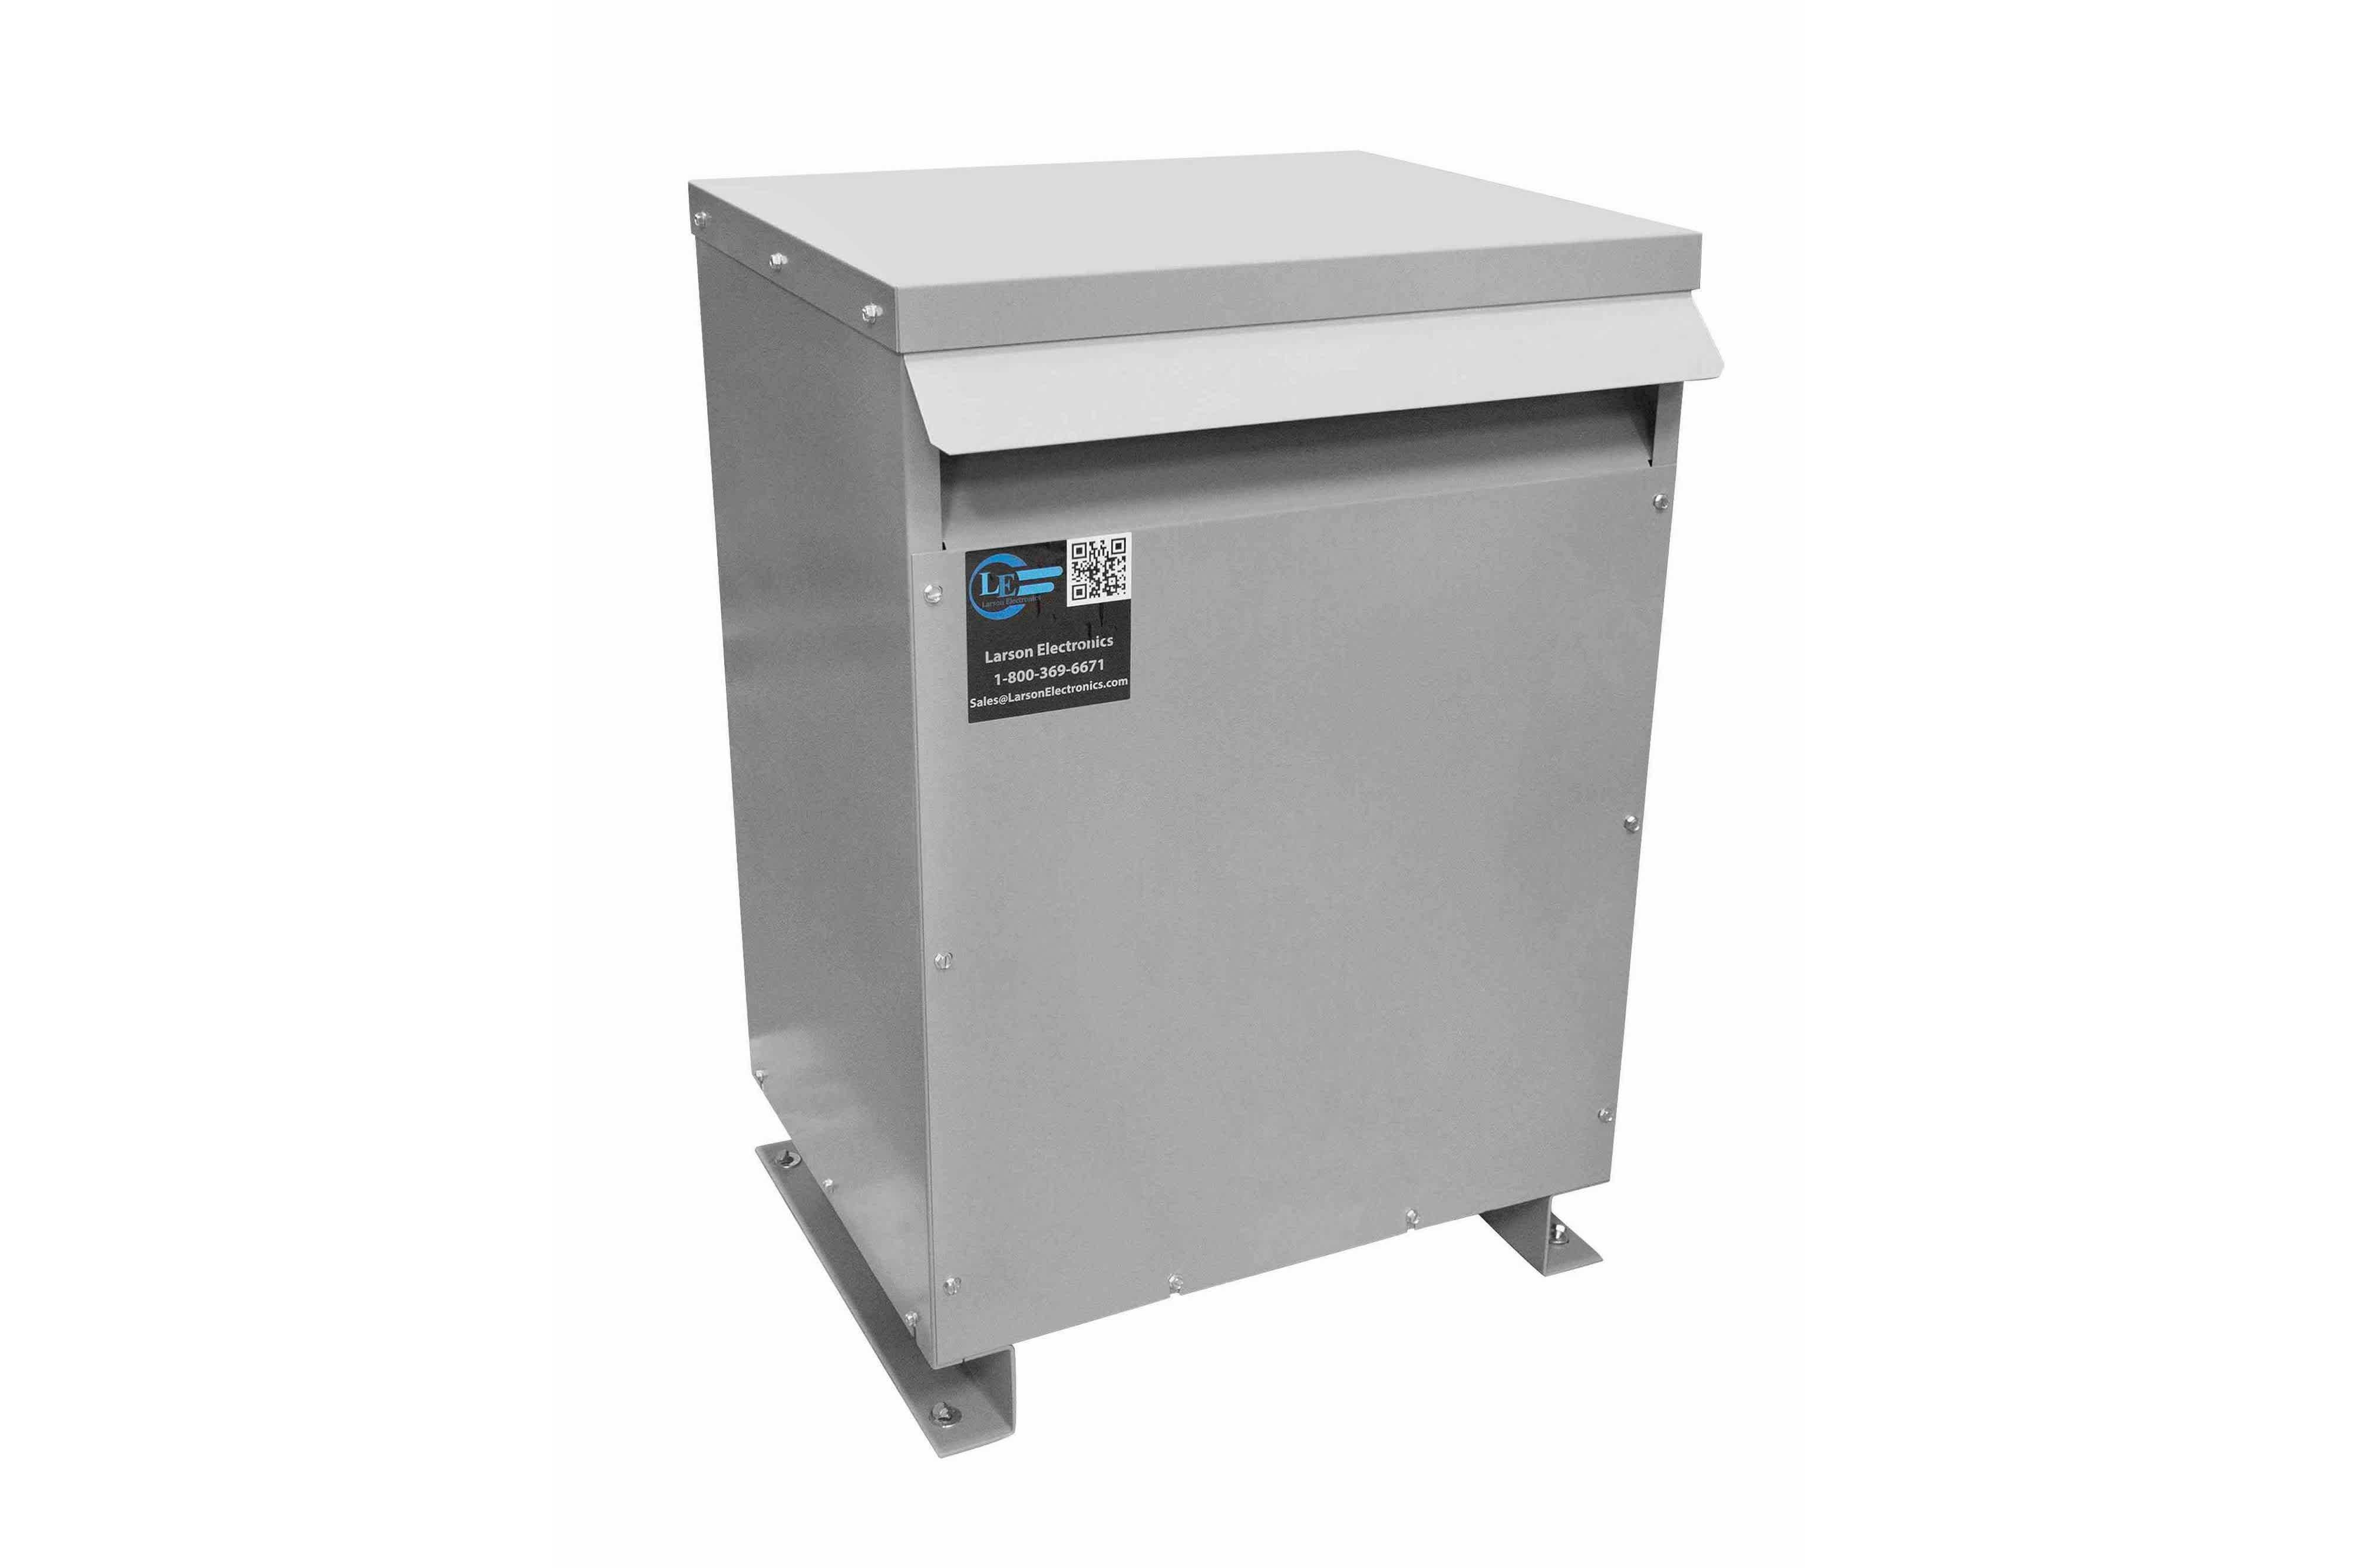 400 kVA 3PH Isolation Transformer, 600V Delta Primary, 480V Delta Secondary, N3R, Ventilated, 60 Hz